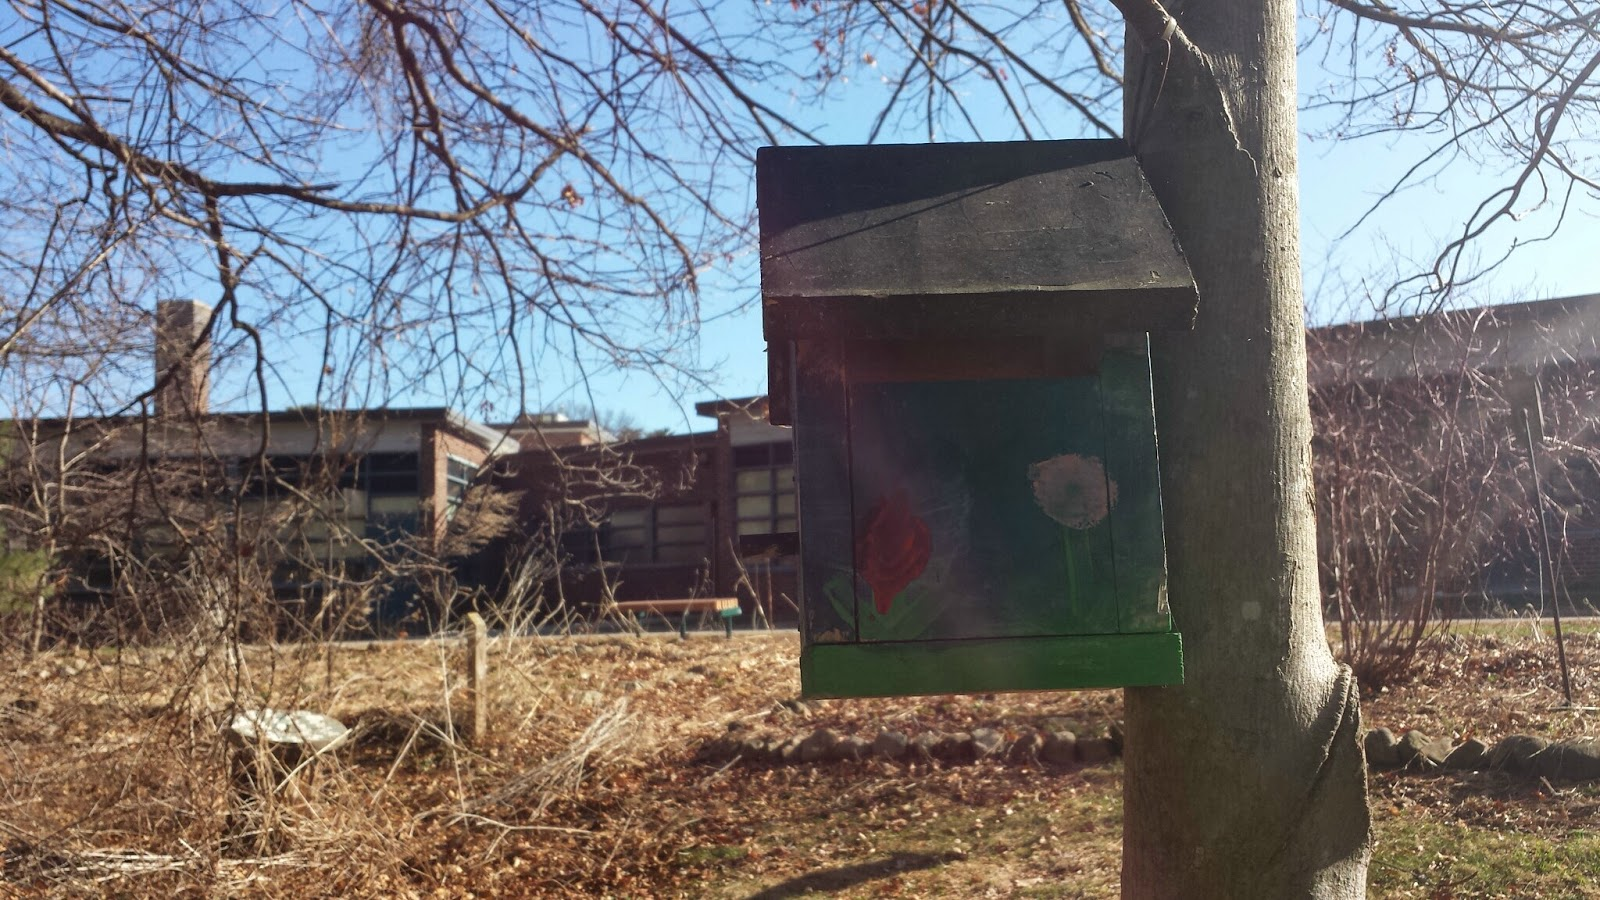 bird house on tree behind the Parmenter School building as the trail ends